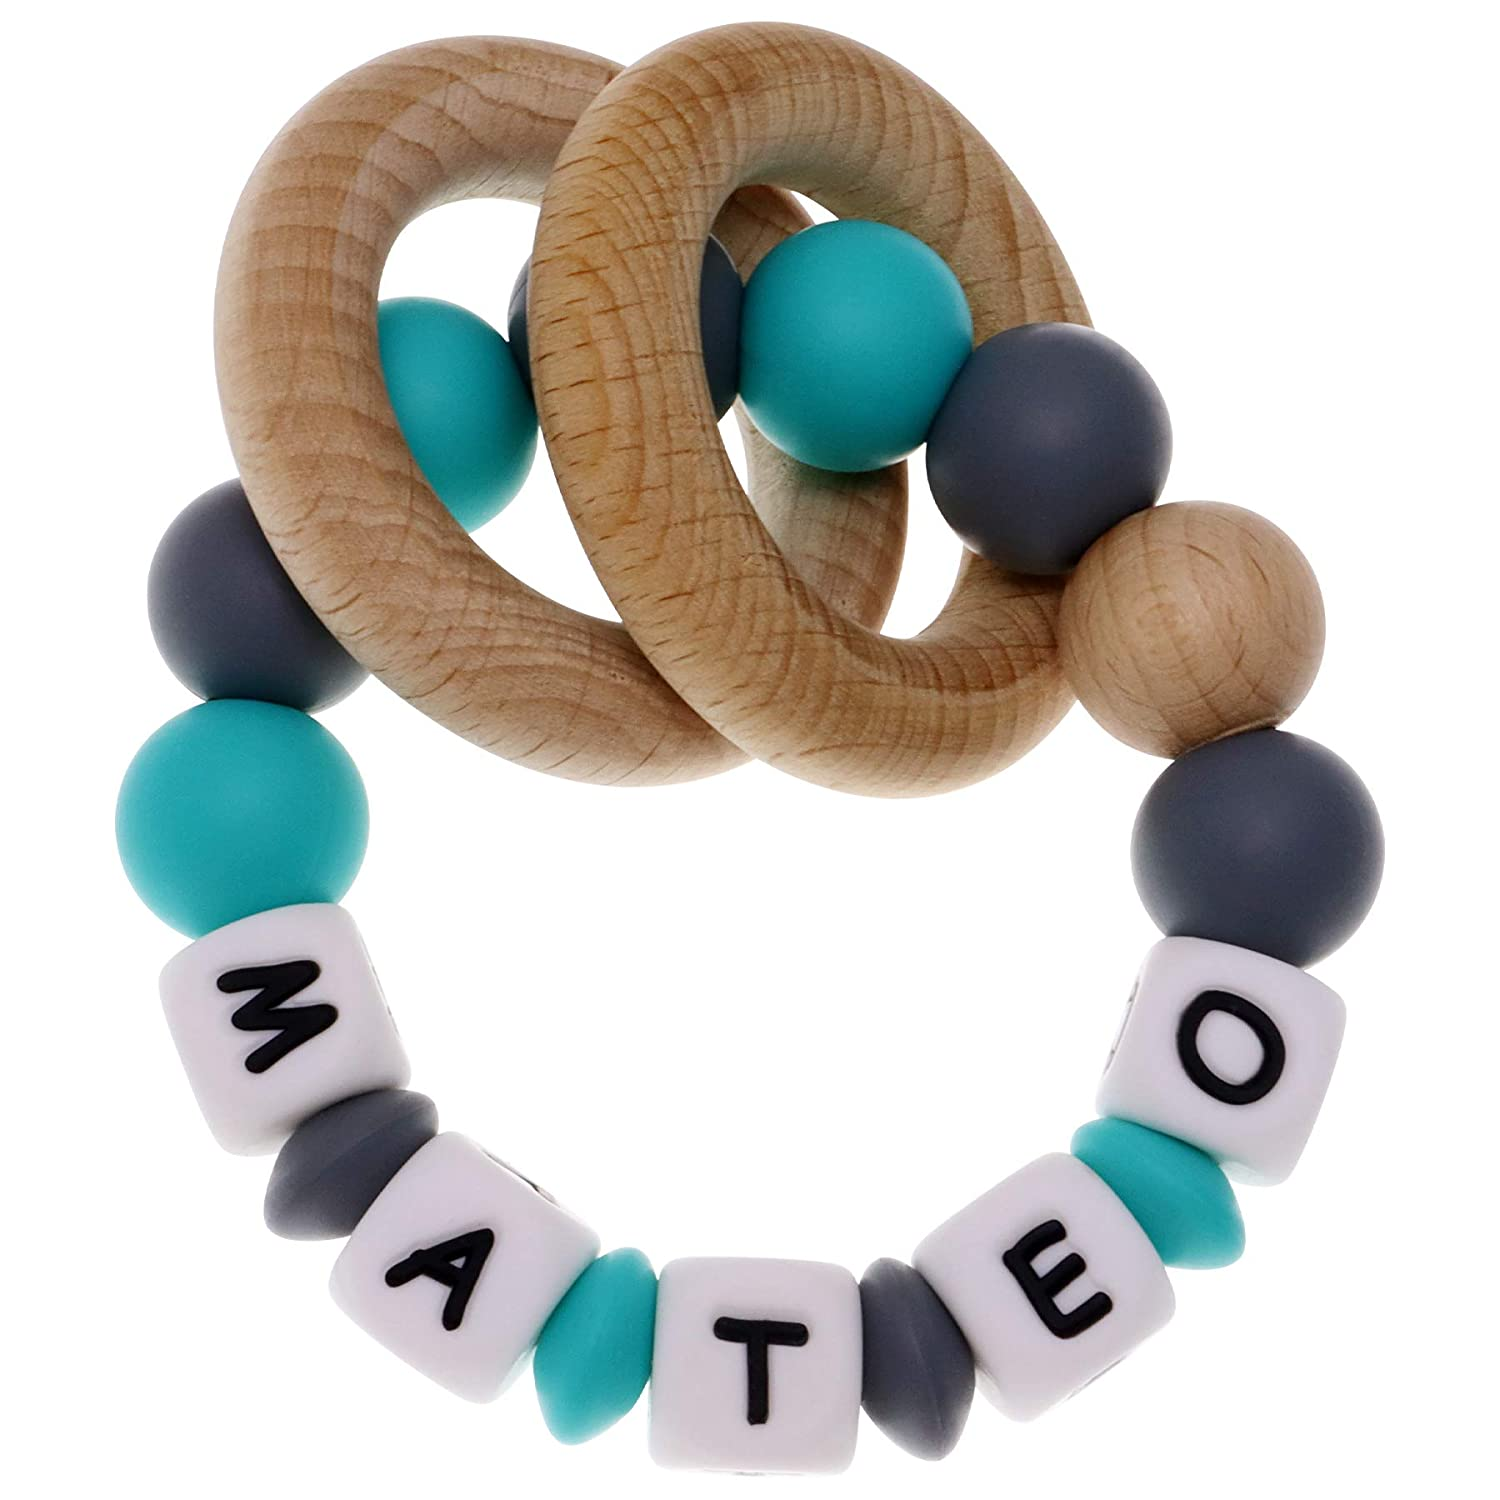 Munchewy Personalized Name Baby Rattle Teether Ring, Customizable Food Grade Silicone Sensory Chew Bracelet with Natural Organic Beech Wood Teething Rings for Baby Boys Girls   Baby Teether Toys(Grey)